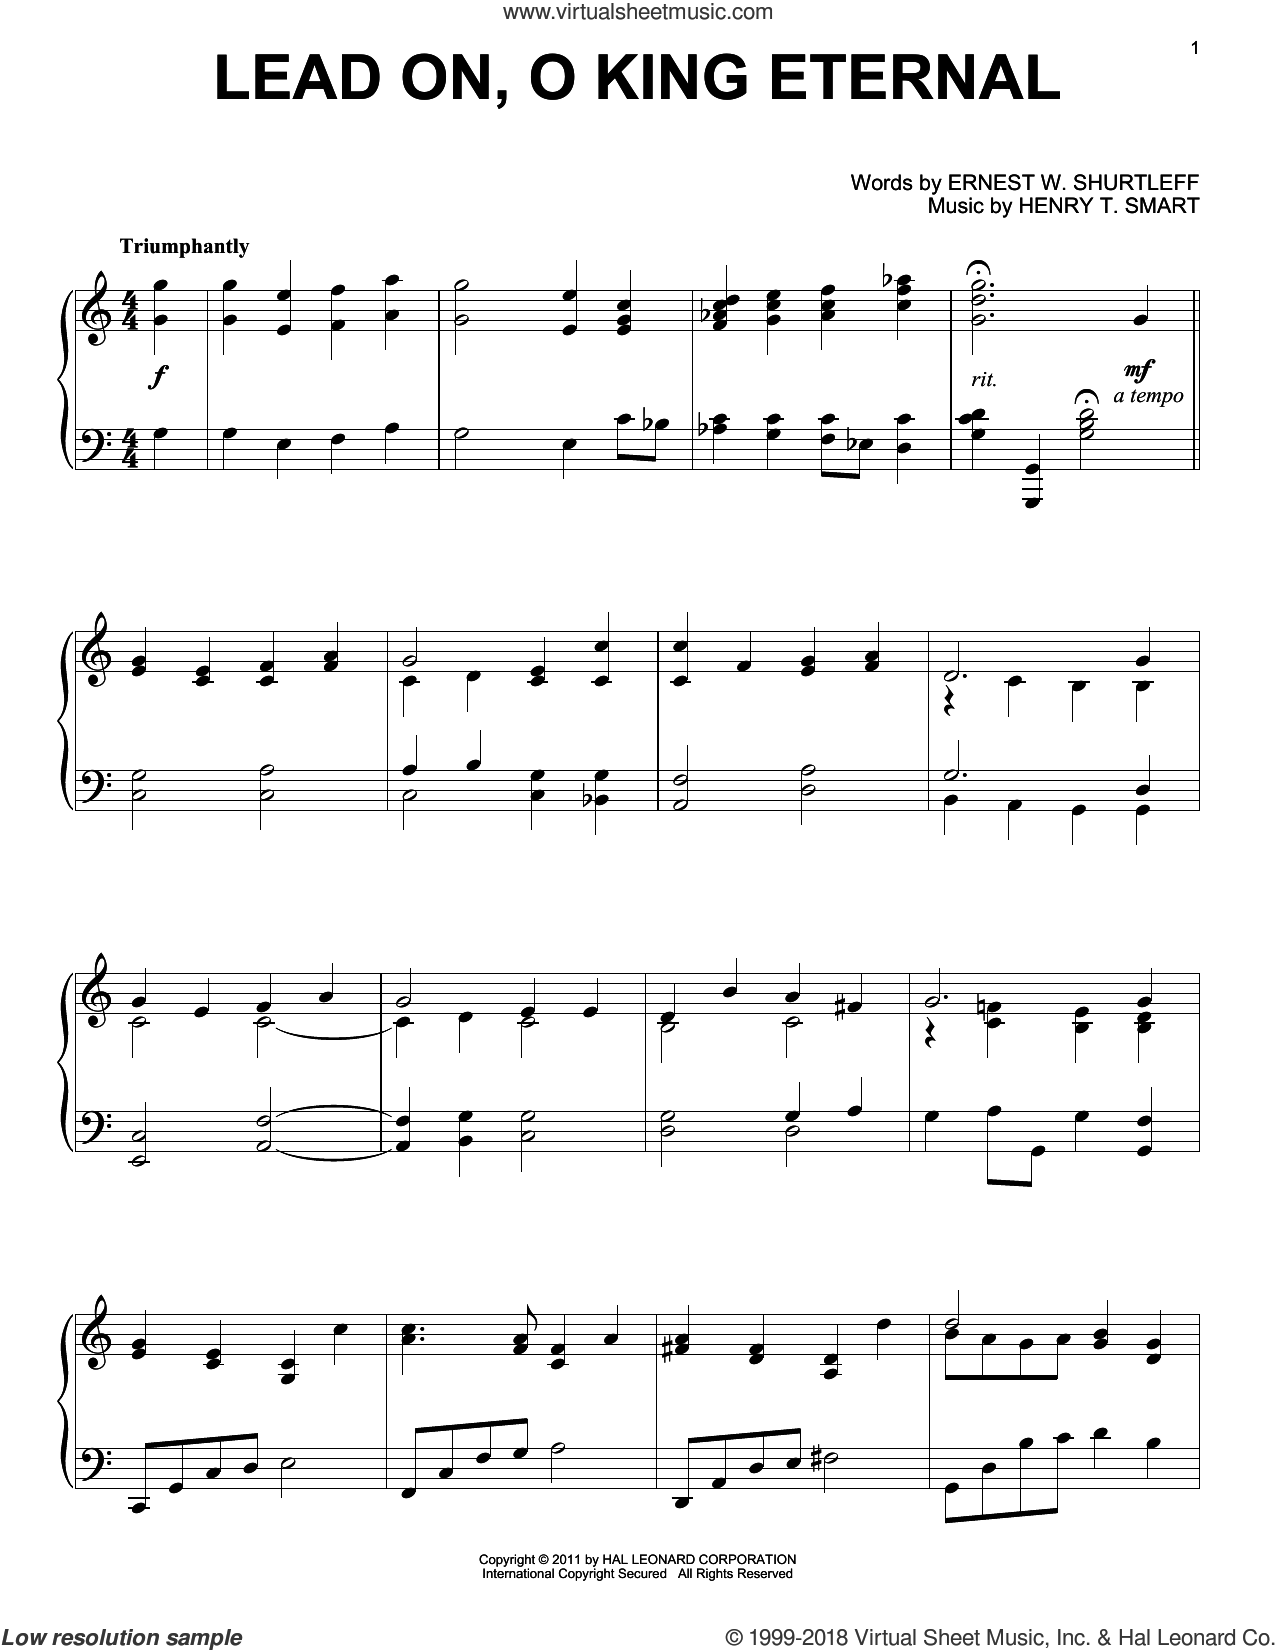 Lead On, O King Eternal sheet music for piano solo by Ernest W. Shurtleff and Henry T. Smart. Score Image Preview.